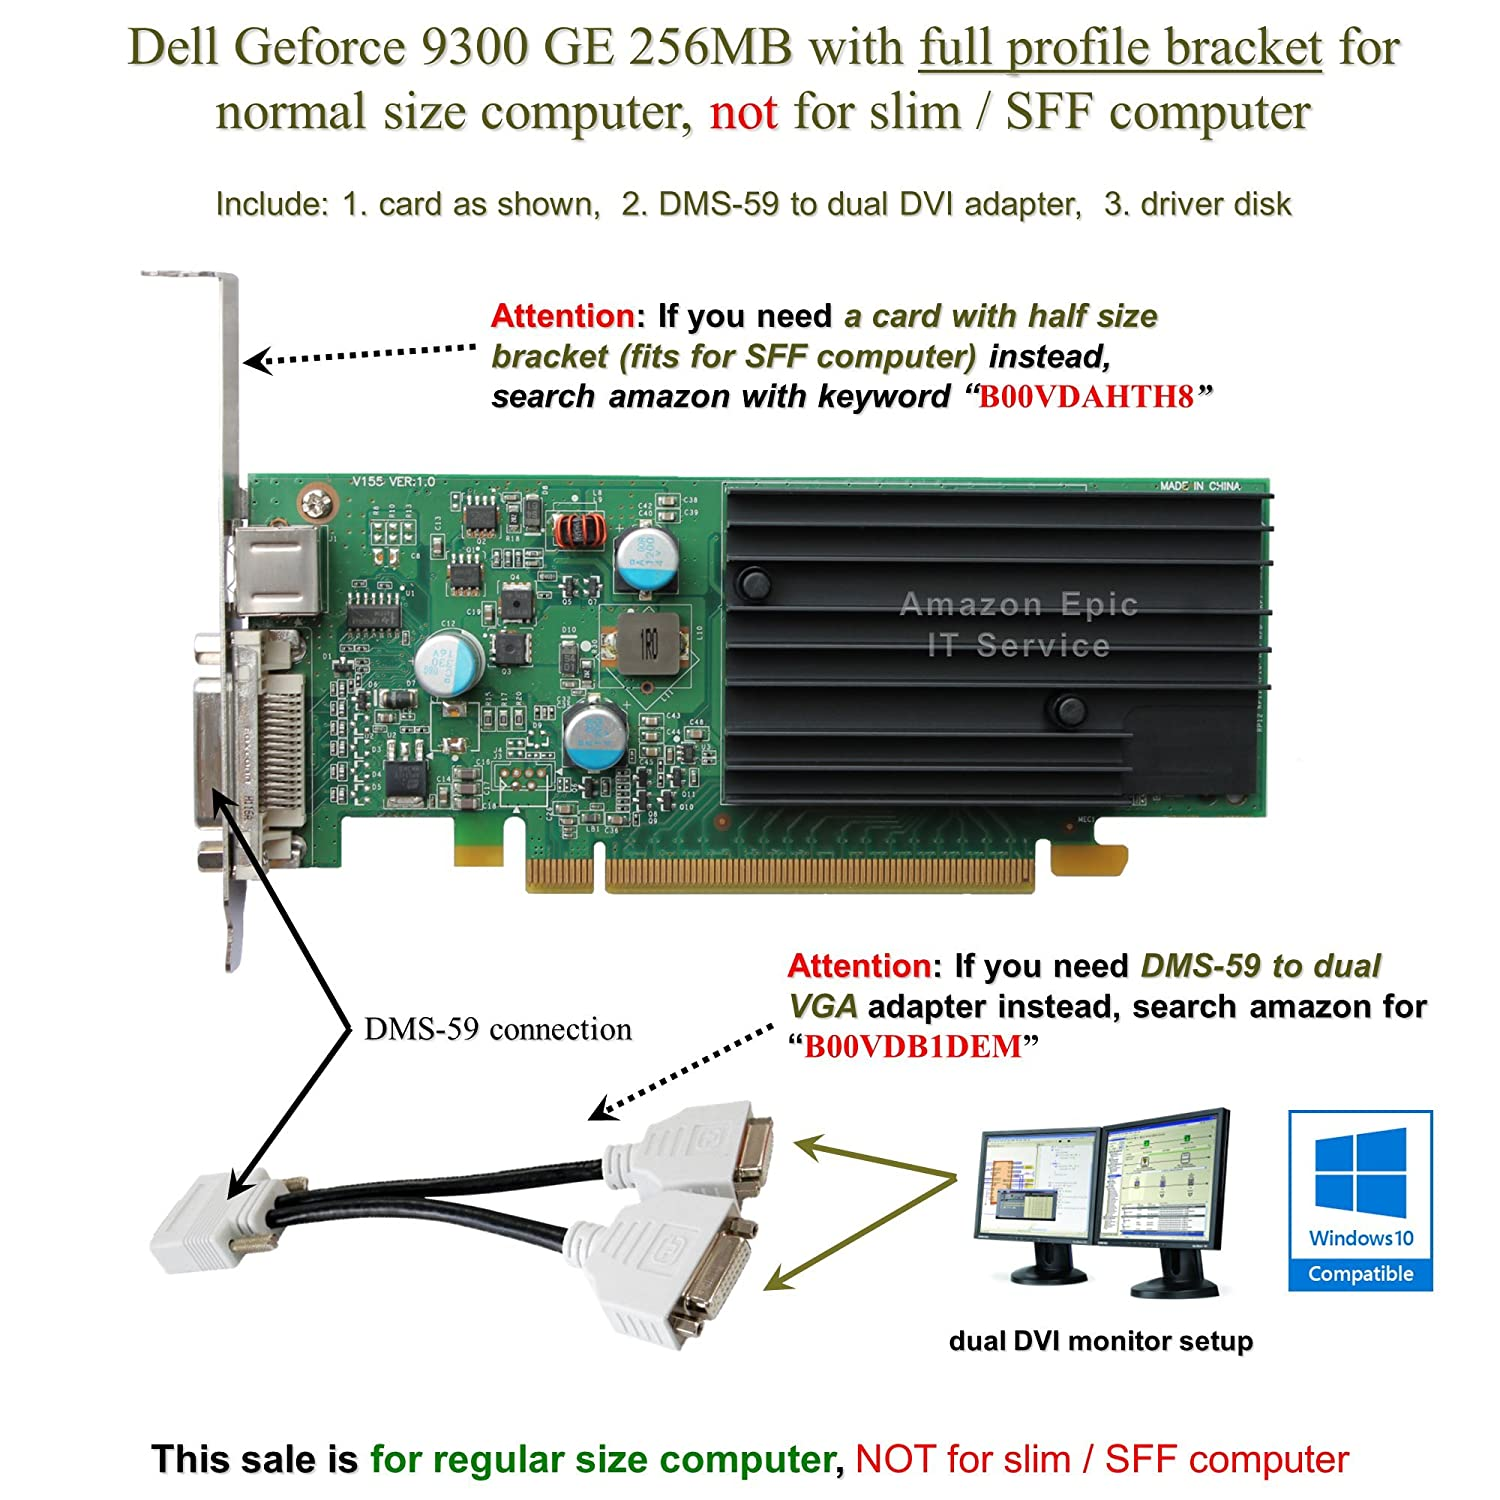 Amazon.com: Epic IT Service - Dell 9300 GE for dual monitor setup (full  size bracket, DMS-59 to dual DVI adapter): Computers & Accessories